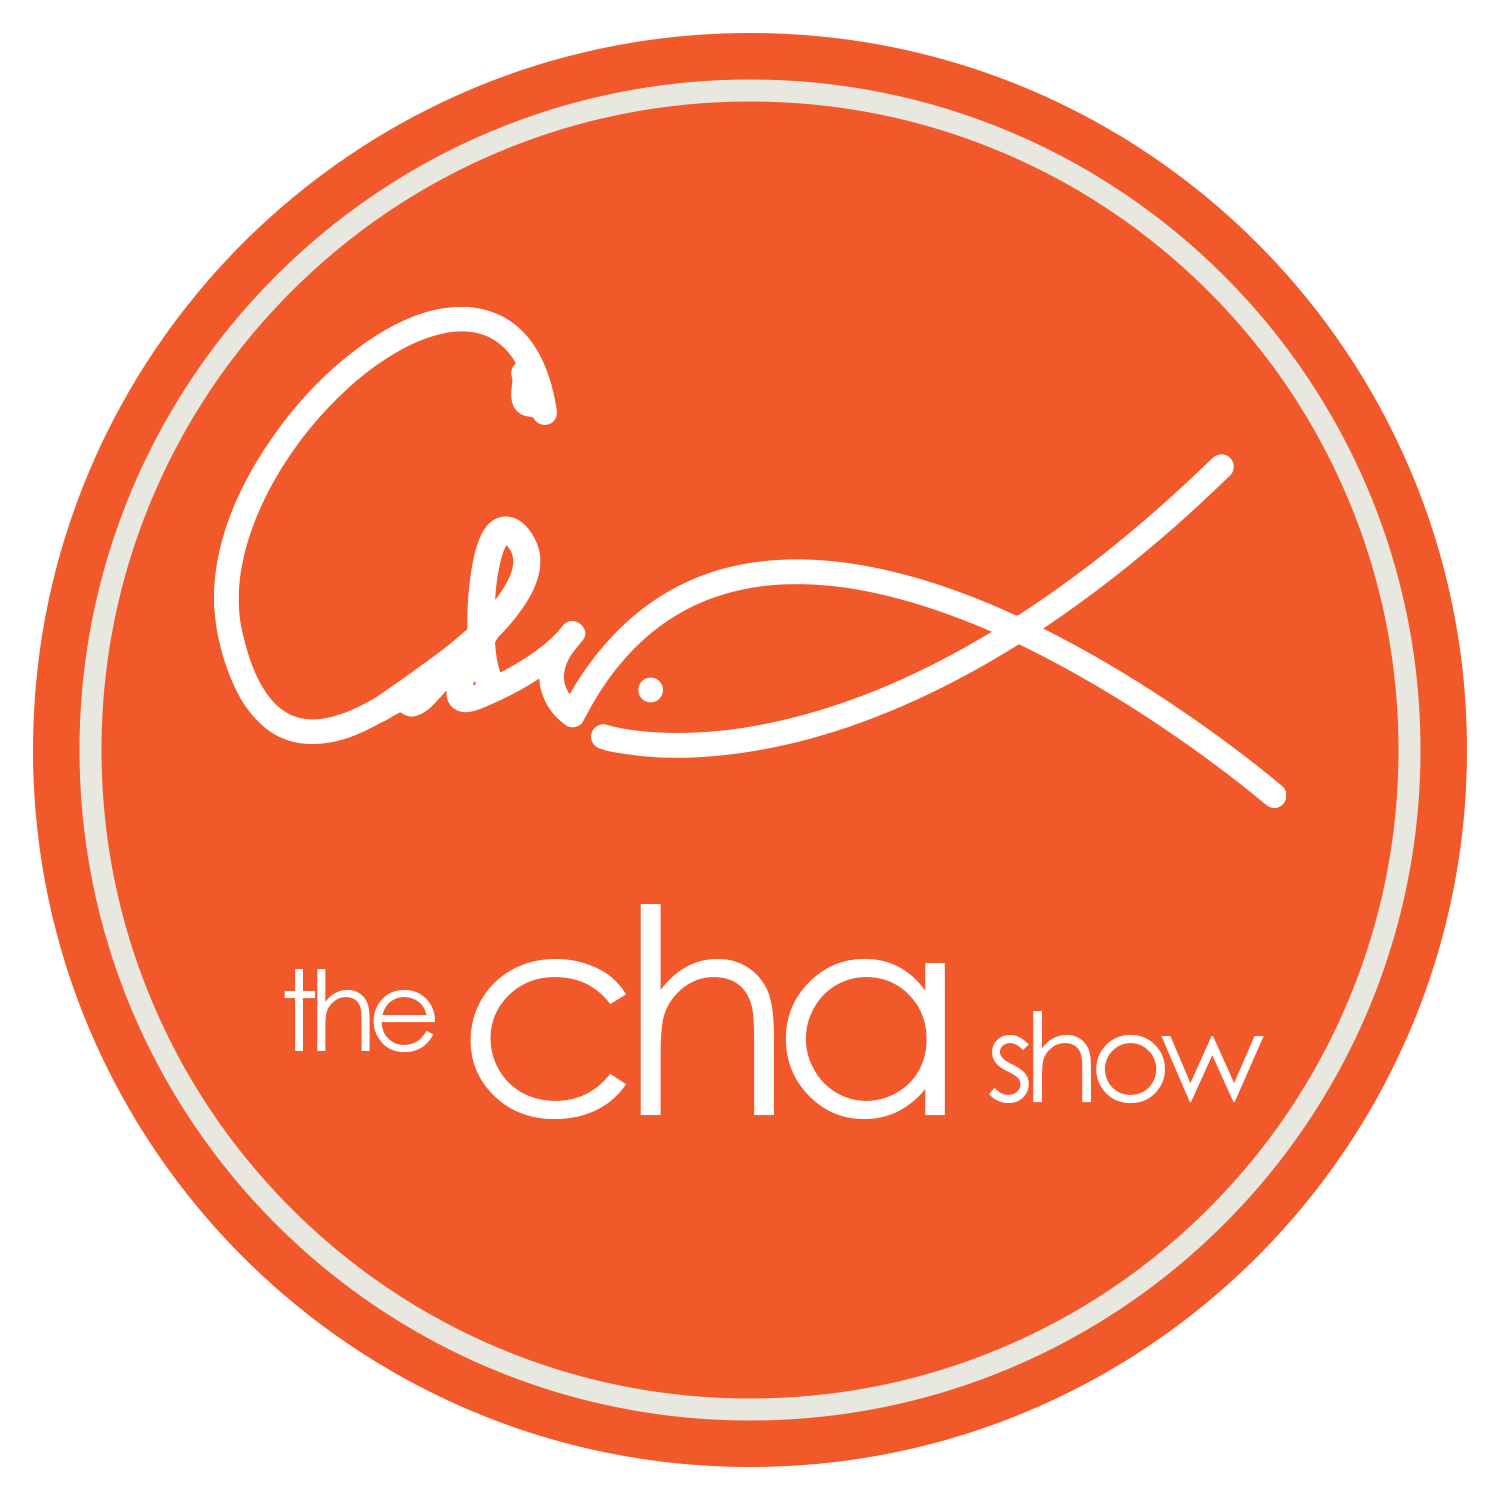 The Cha Show